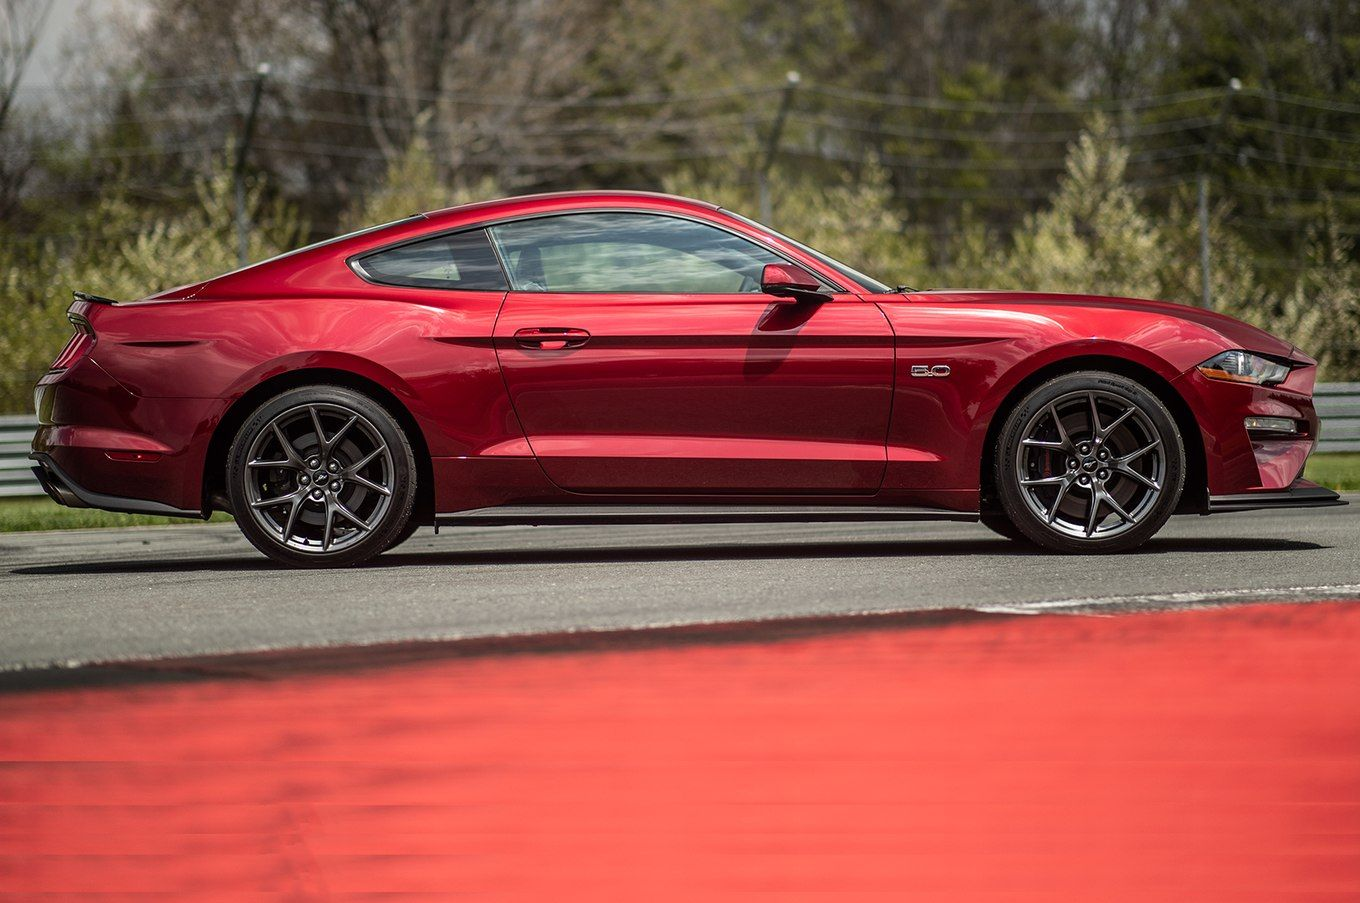 The 2018 Ford Mustang Gt Performance Pack 2 Drives Like The Sports